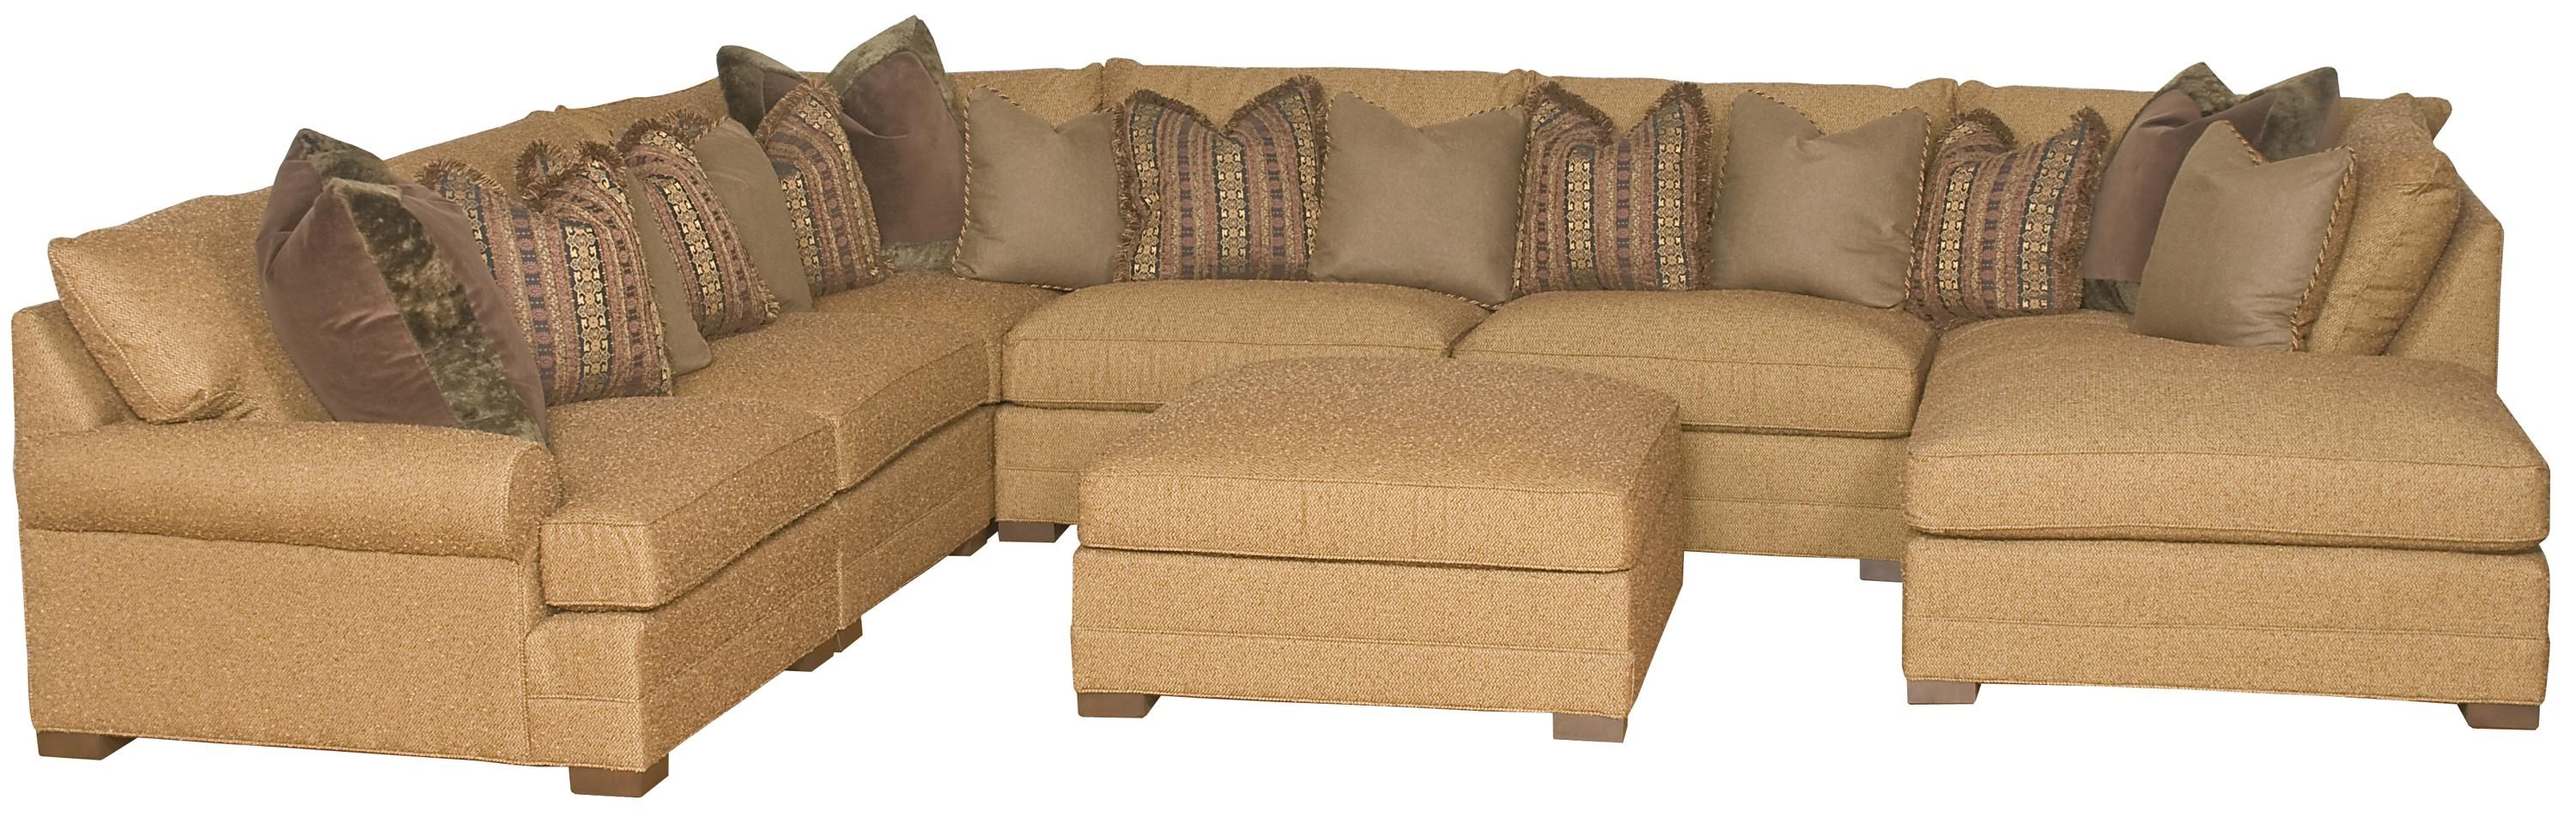 sectional sofa u shaped 3 piece set dimensions king hickory casbah transitional hudson s